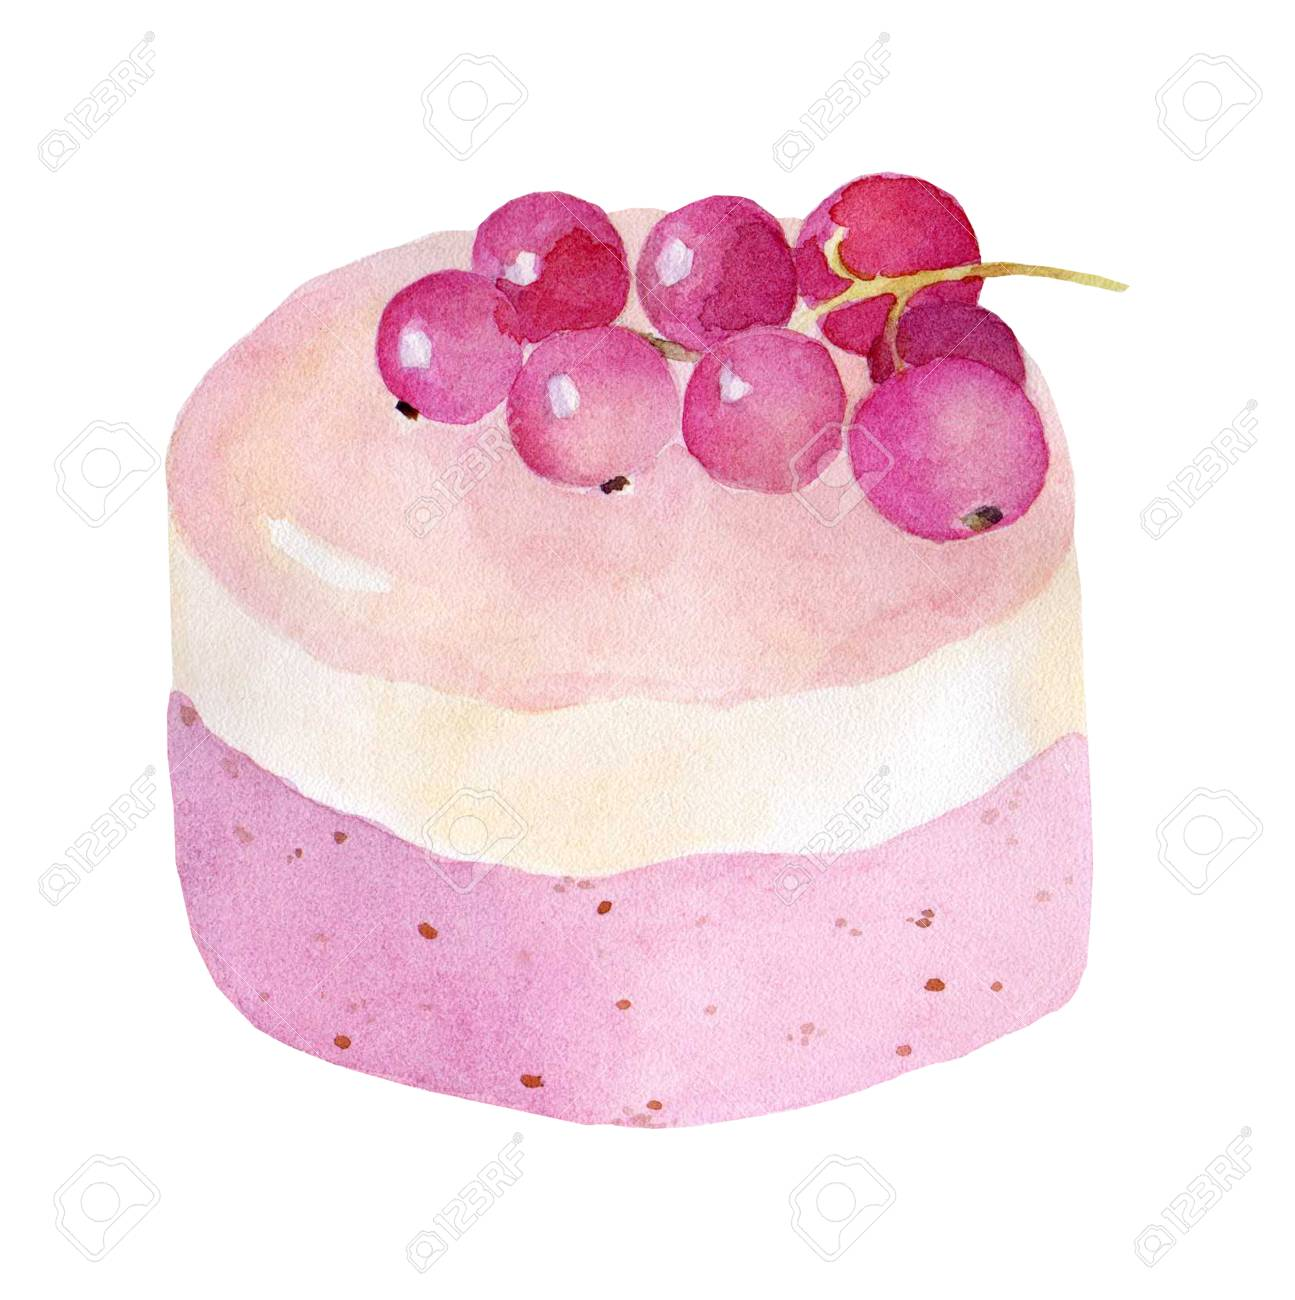 Cake on white background hand drawn watercolor illustration on white background. It can be used for card, postcard, cover, invitation, wedding card, birthday card. - 67669951